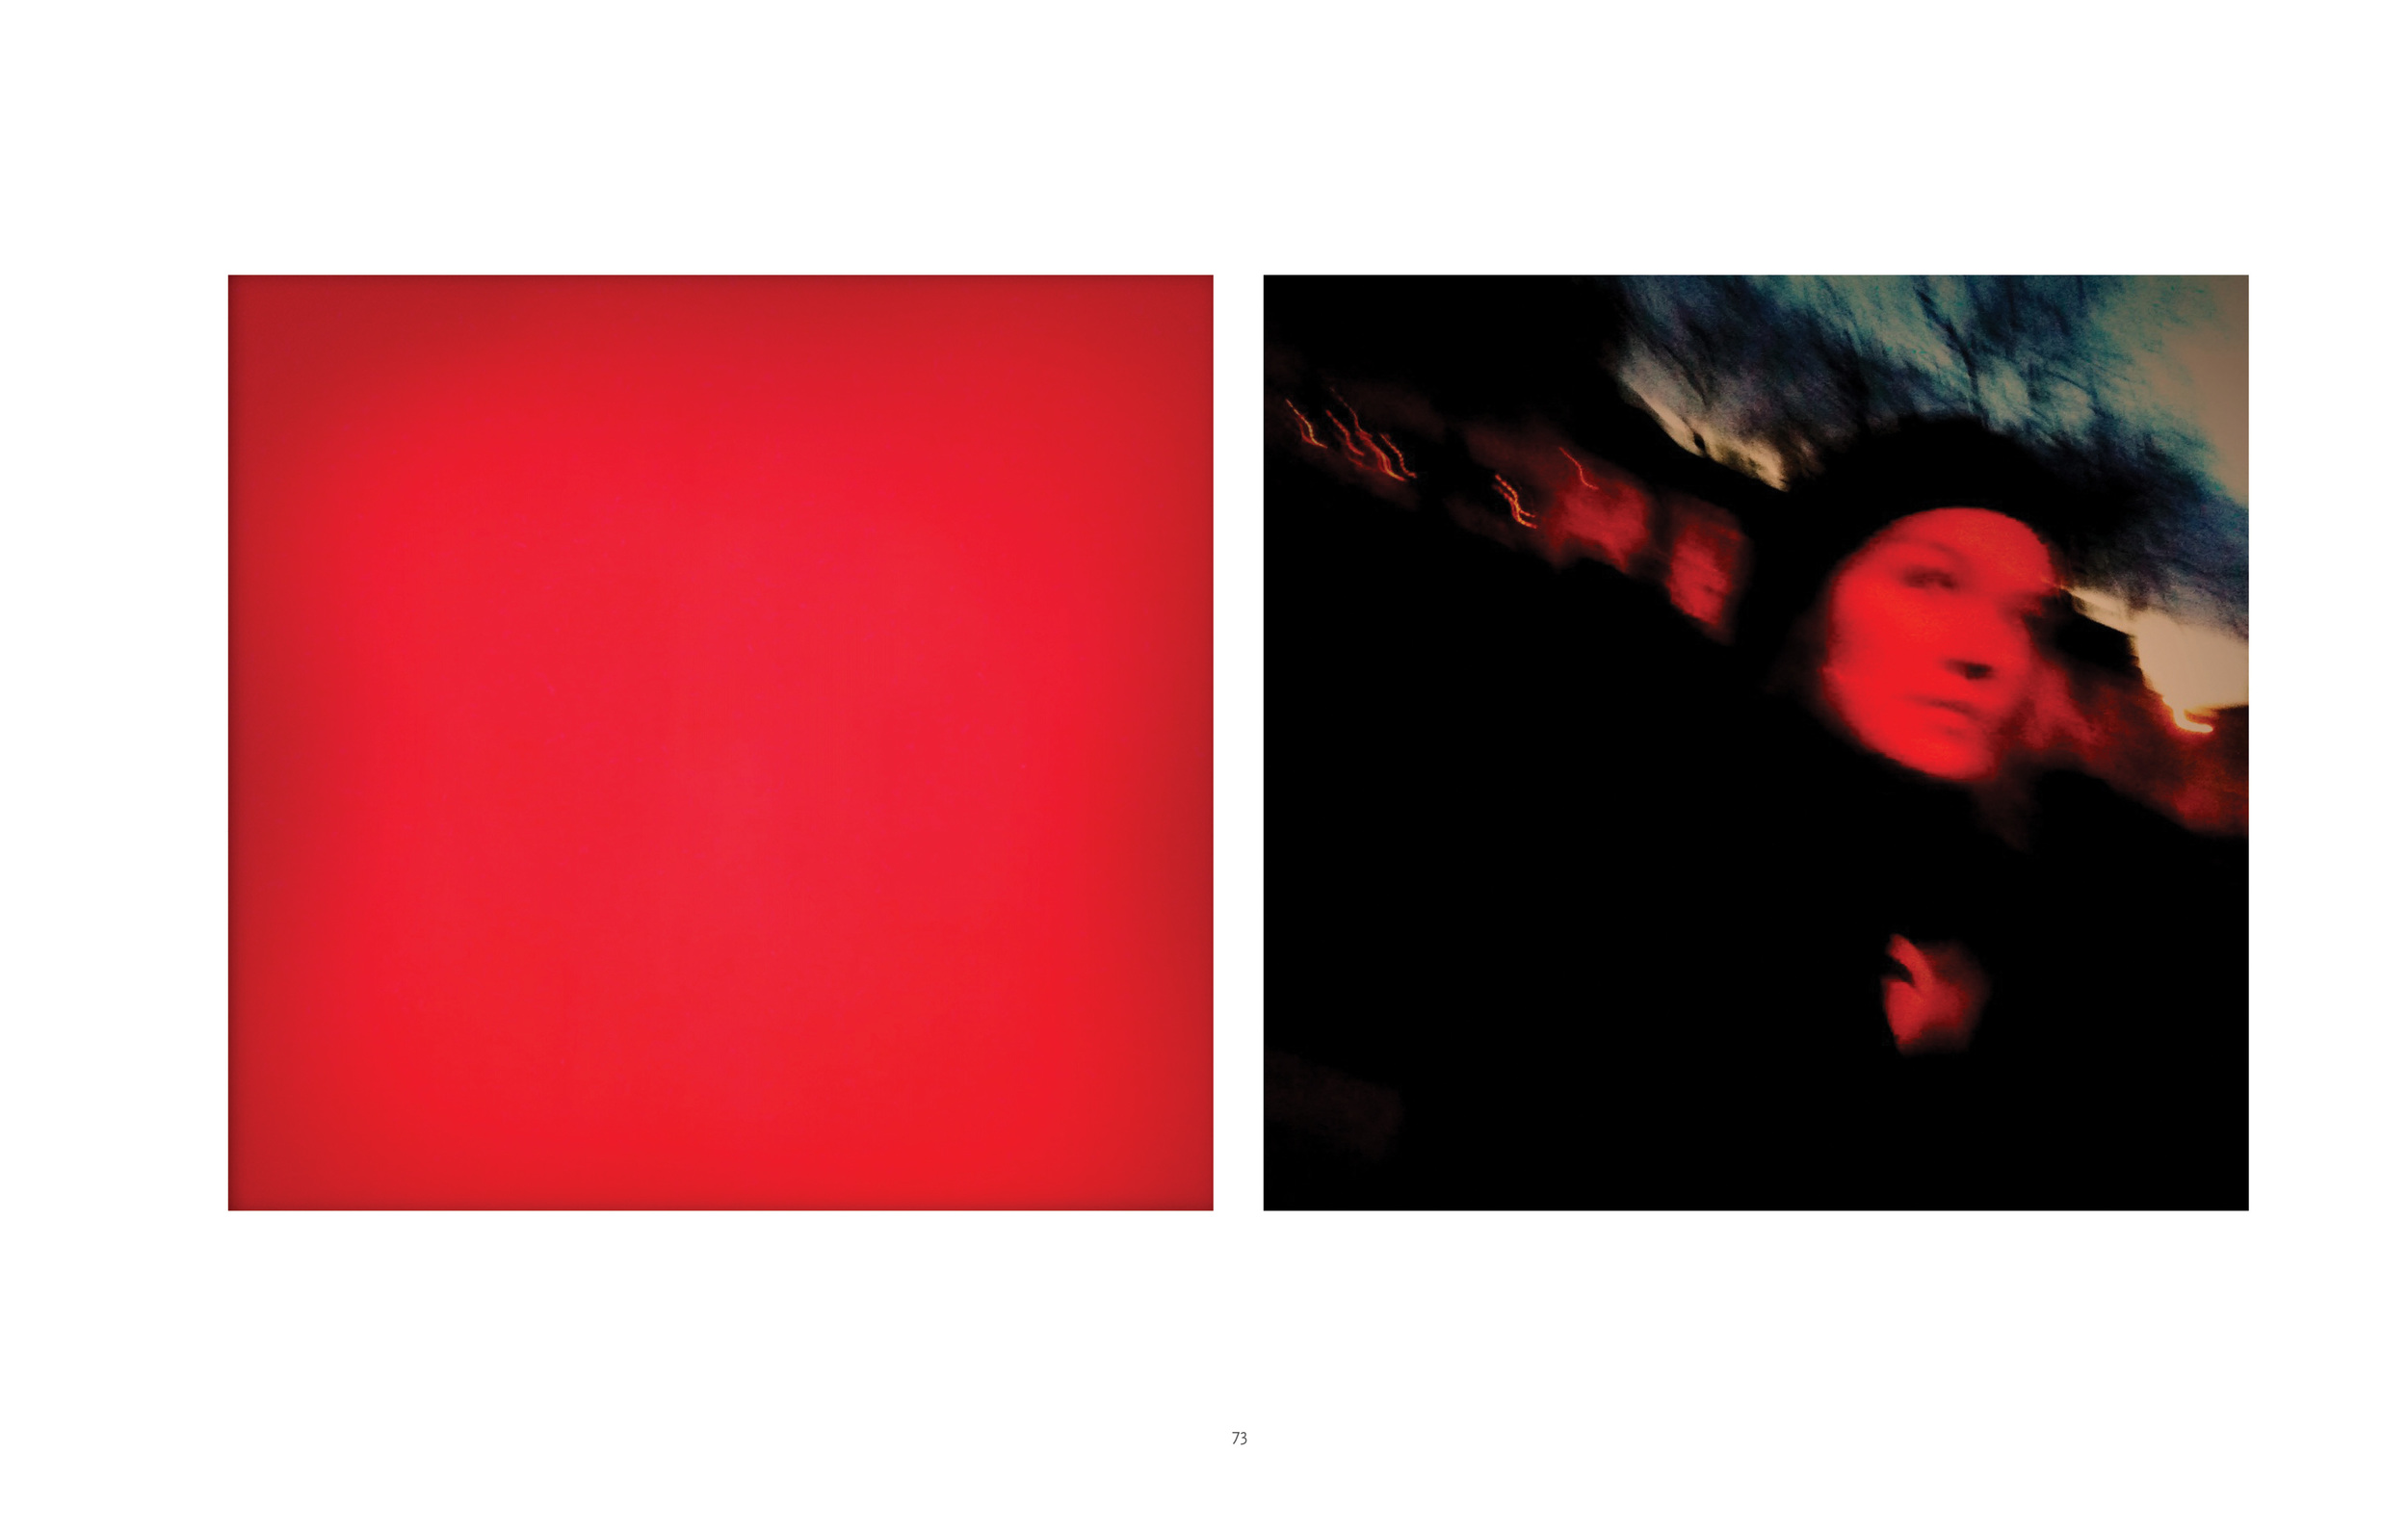 """Selected Images from """"Postcards Home"""" - Published by Daylight Books 2013"""